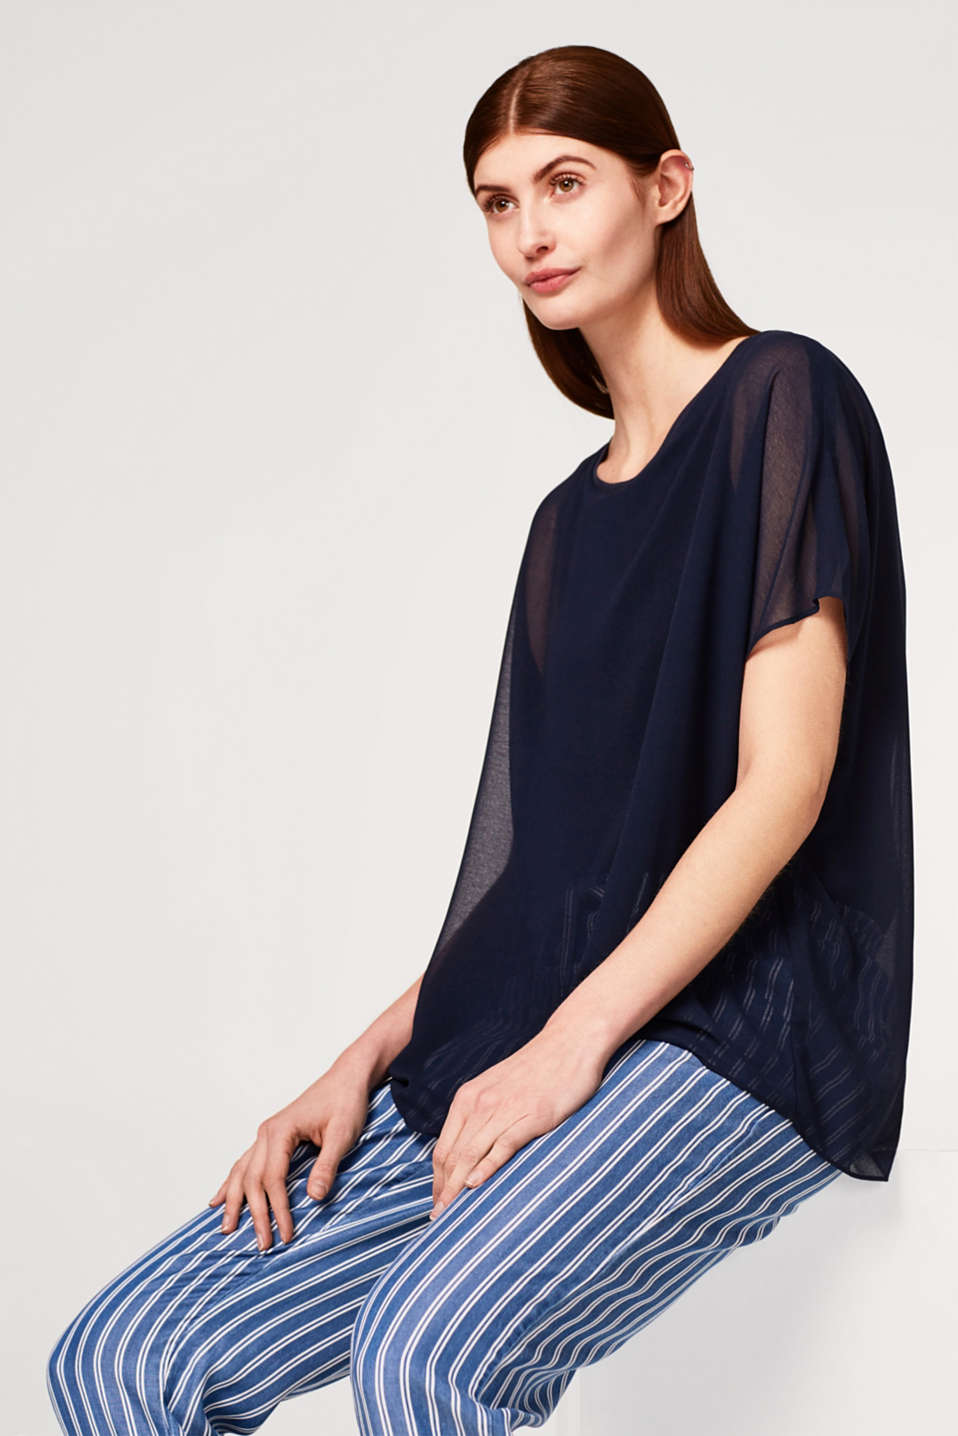 Esprit - Flowing, layered blouse with batwing sleeves